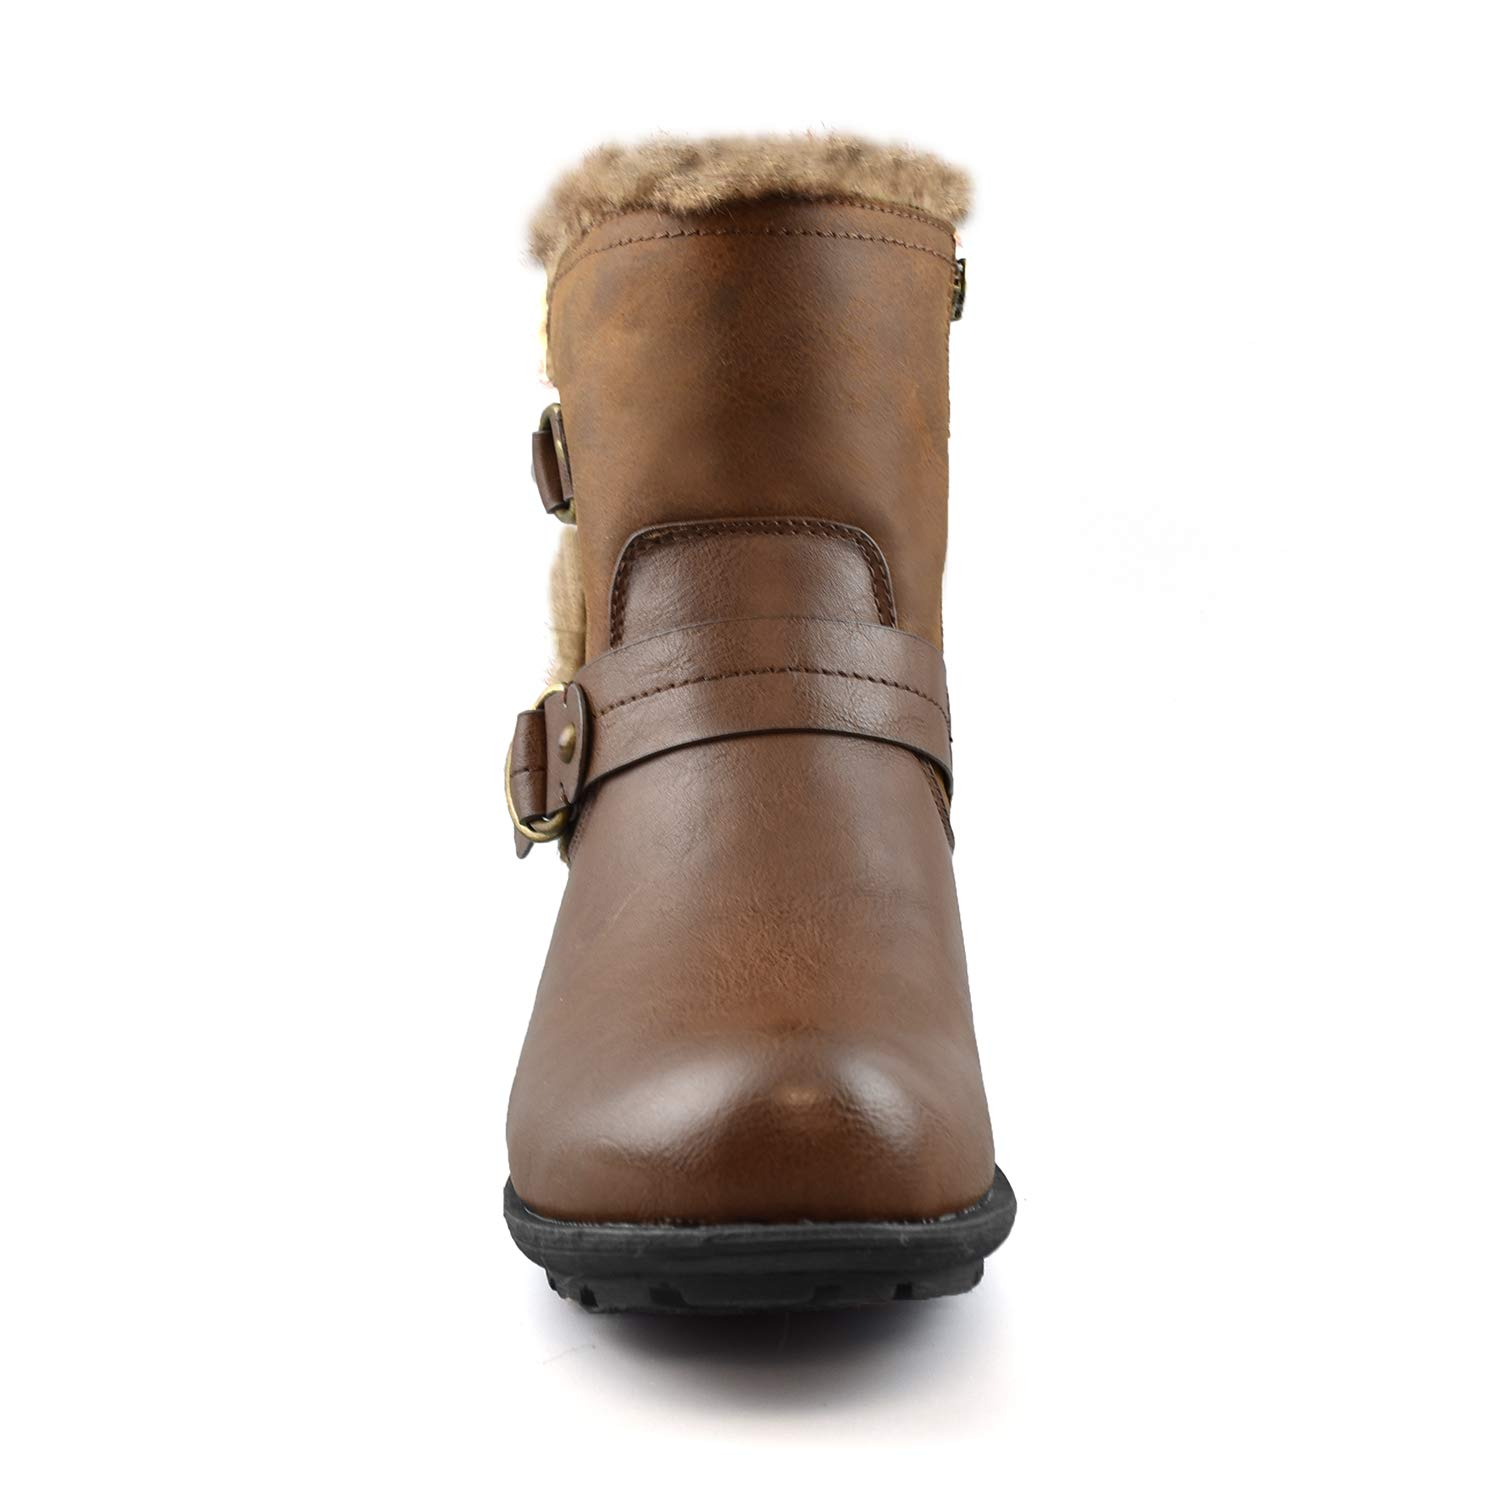 Comfy Moda Womens Winter Boots 3M/™ Thinsulate/™ Memory Foam Super Warm Comfy Size 12 Available Meghan